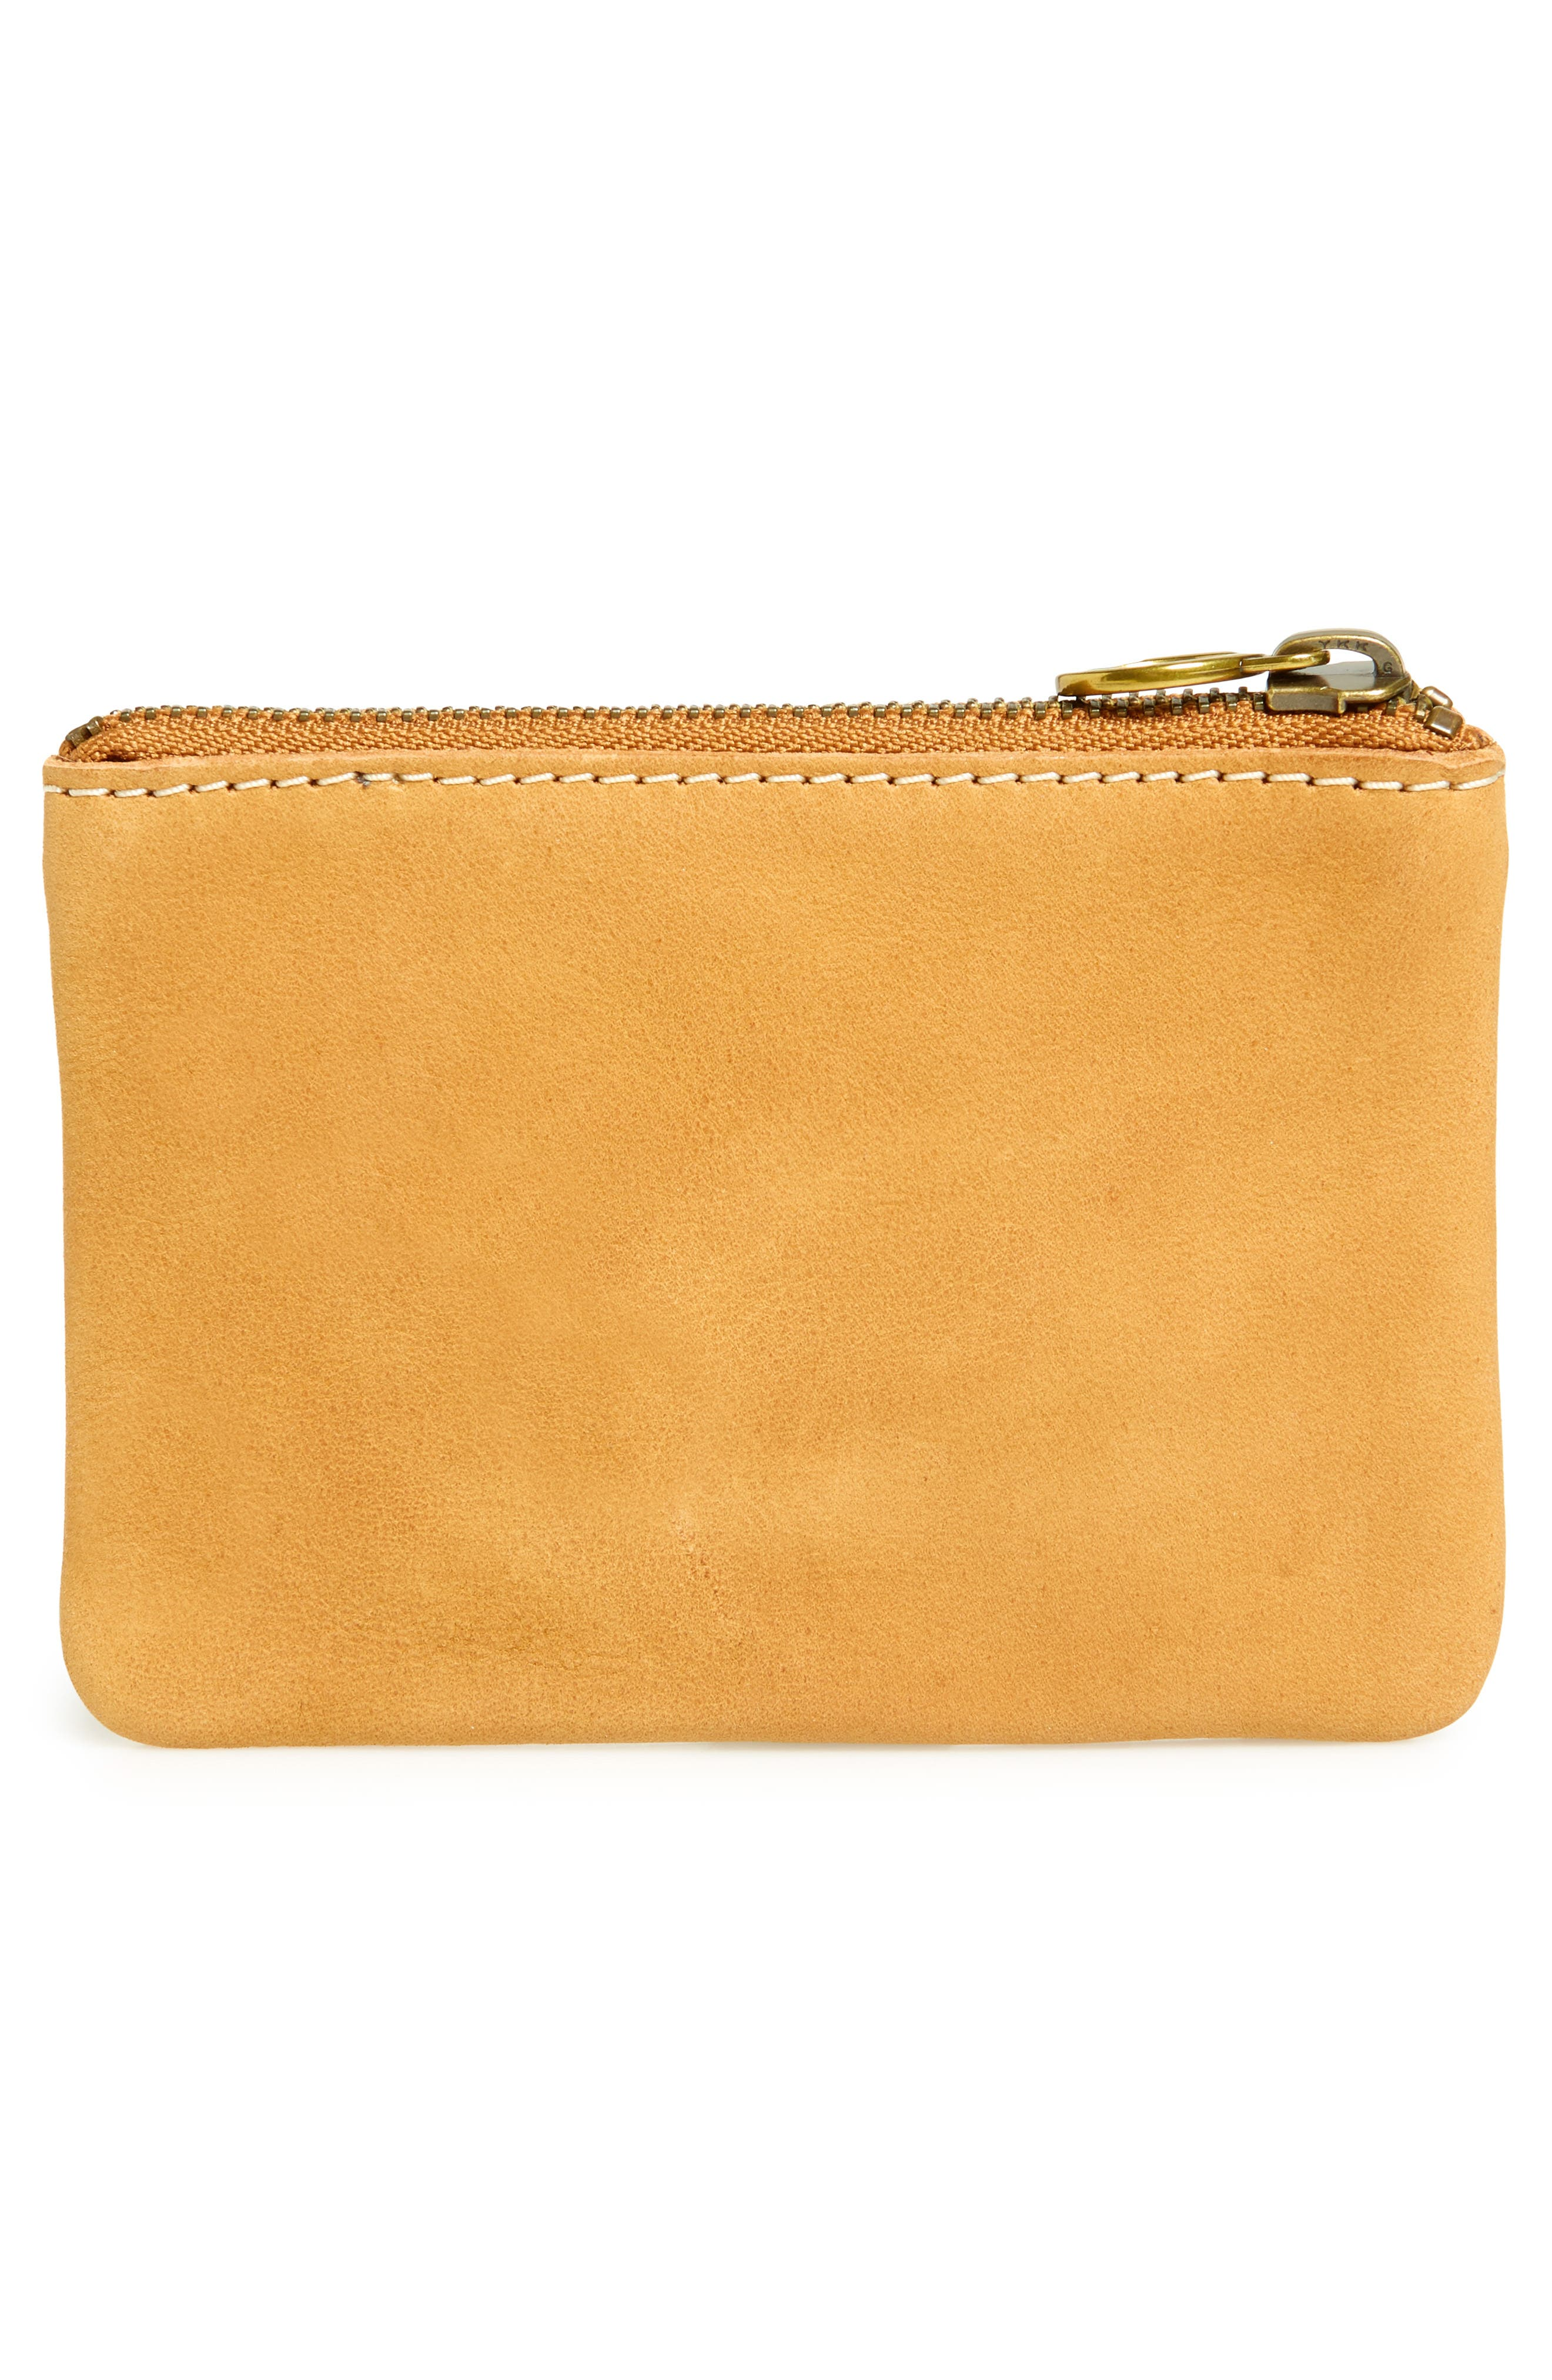 Sun Embroidered Small Flat Zip Pouch,                             Alternate thumbnail 3, color,                             Burnished Caramel